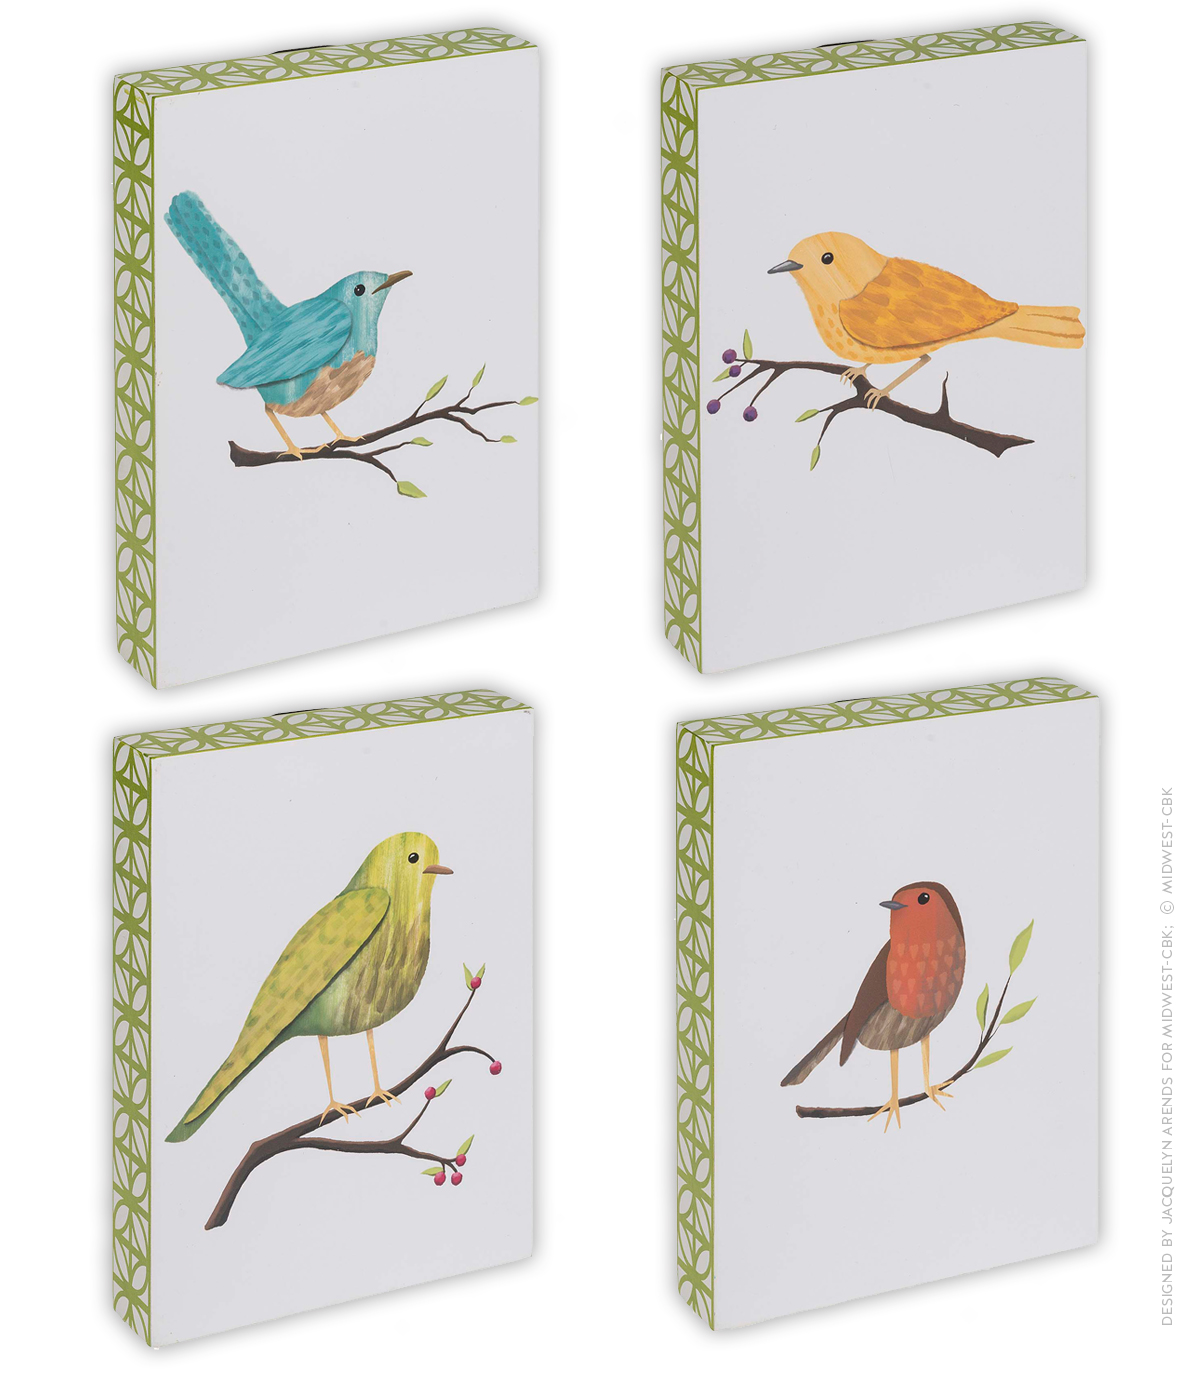 Wall Art Bird Illustration / Design for Contemporary Garden Collection within Midwest-CBK's July 2017 product catalogue